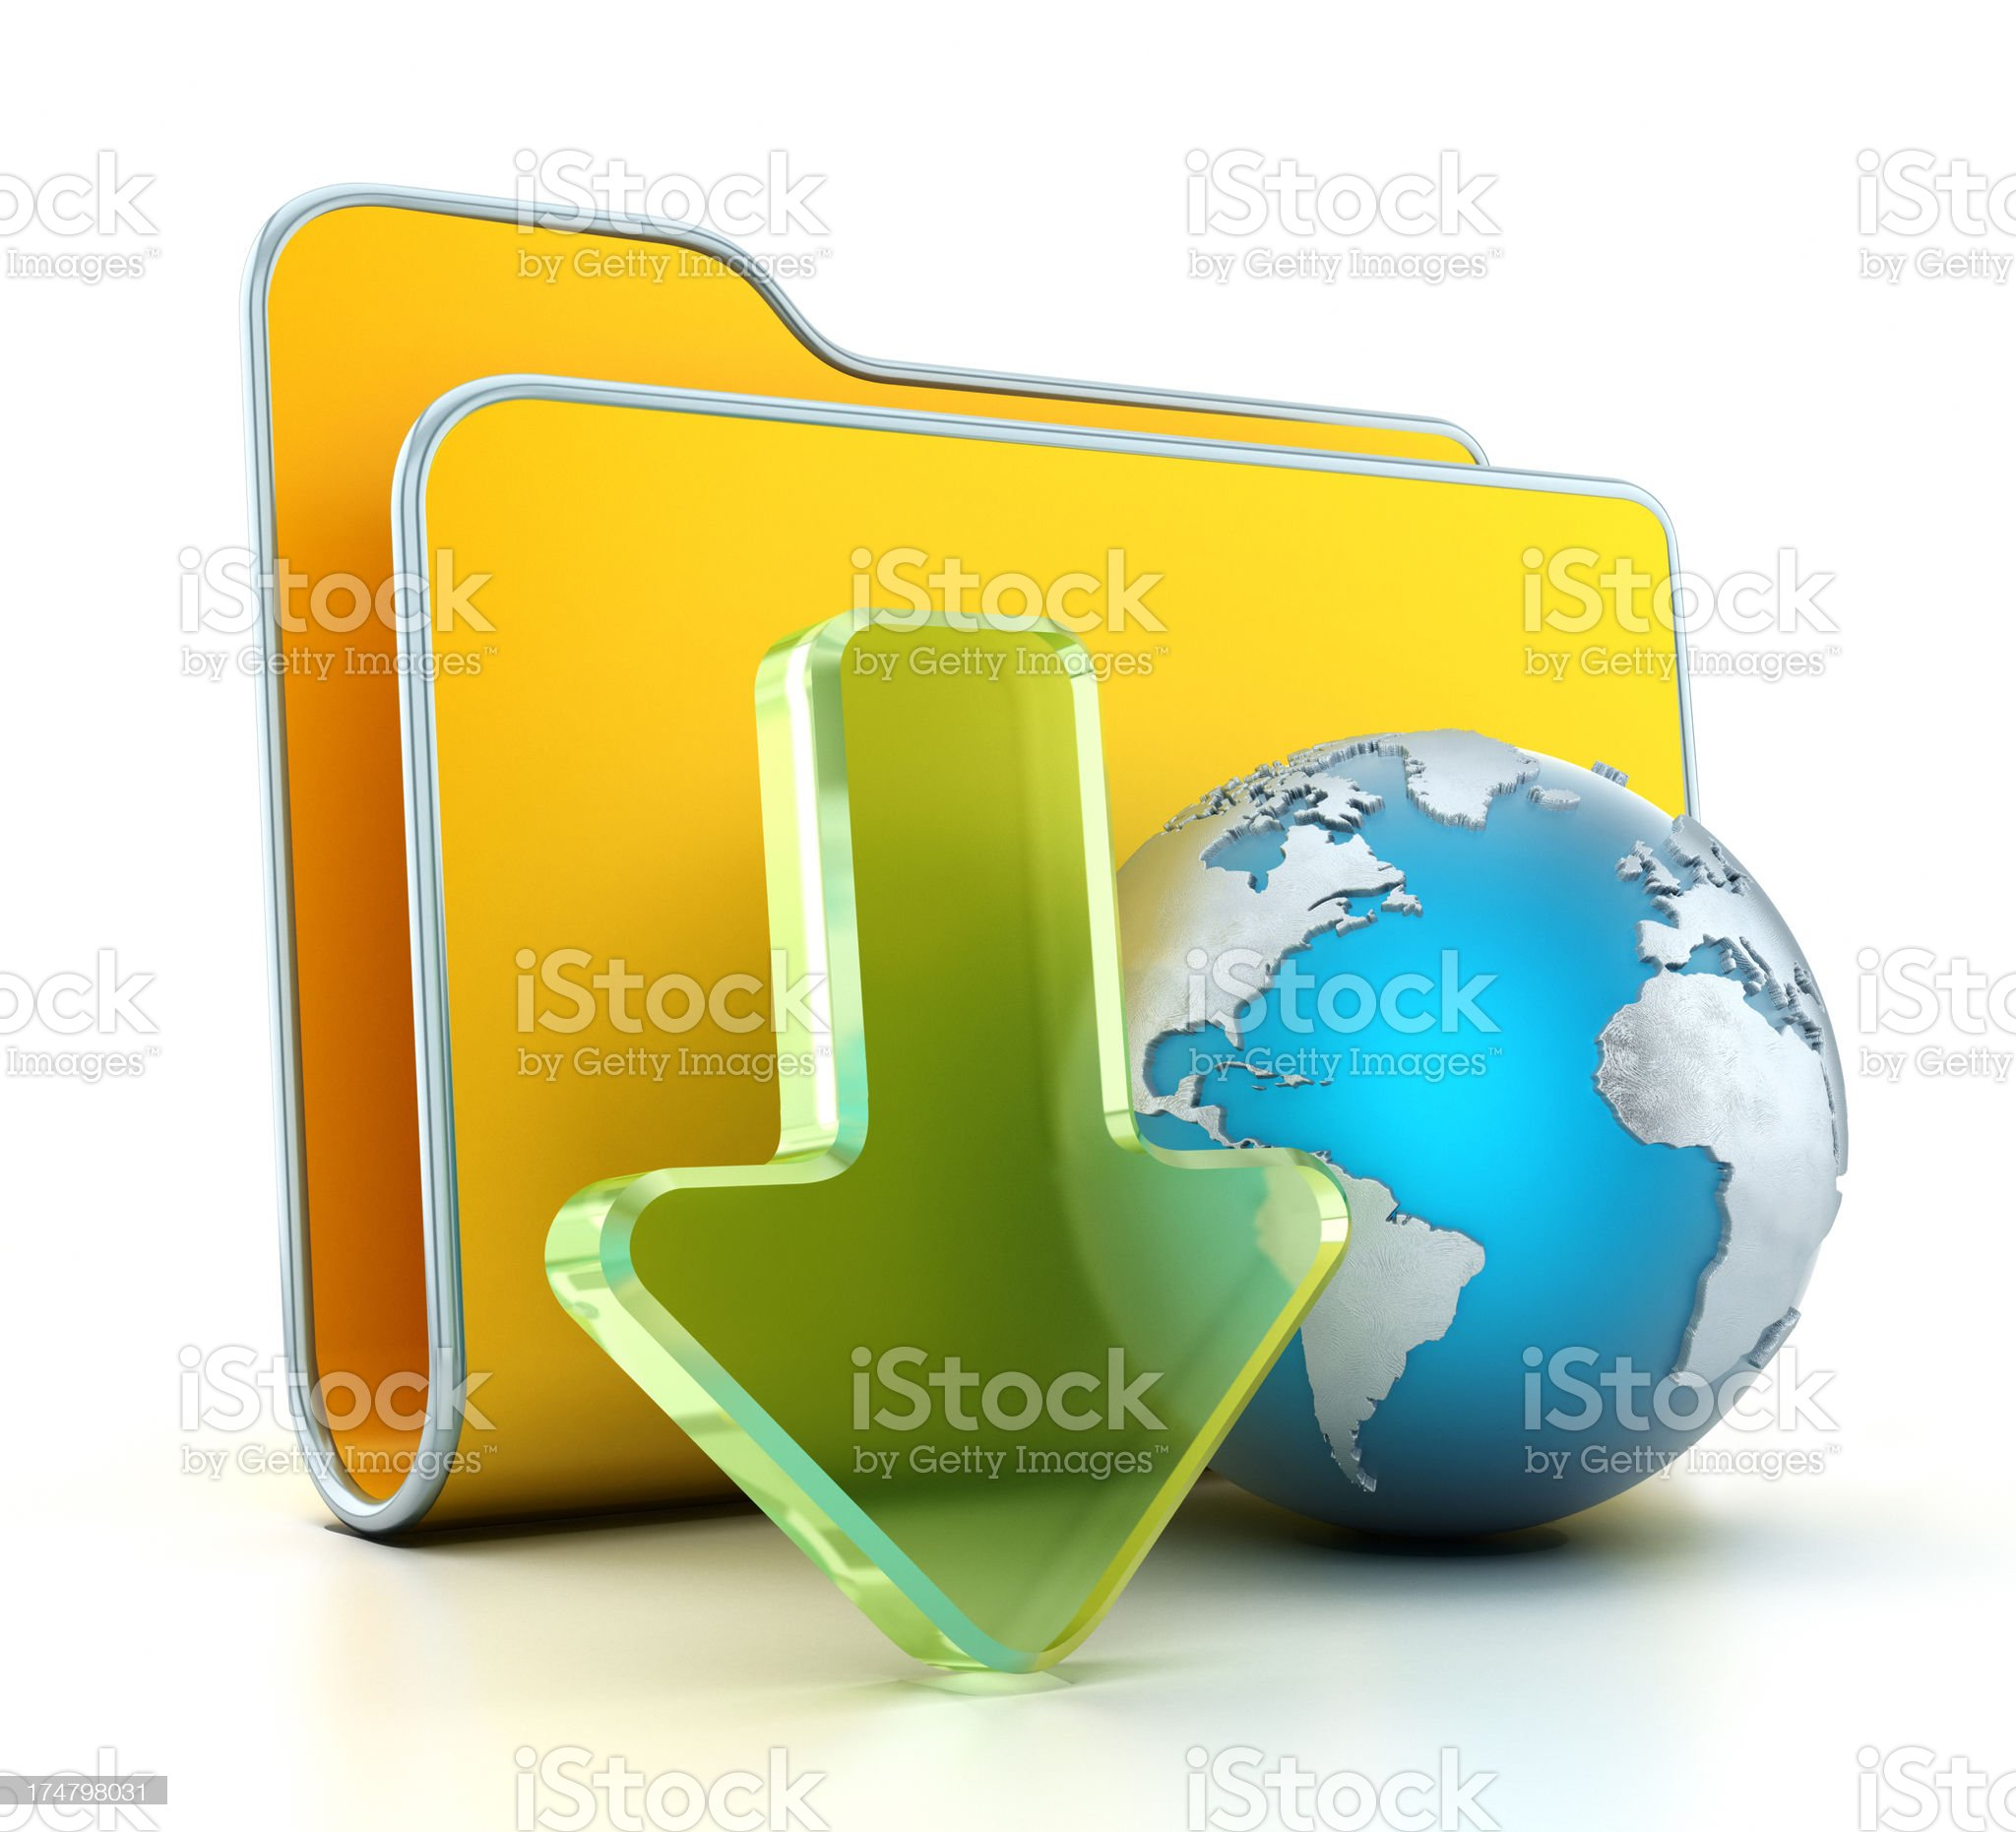 Download icon royalty-free stock photo